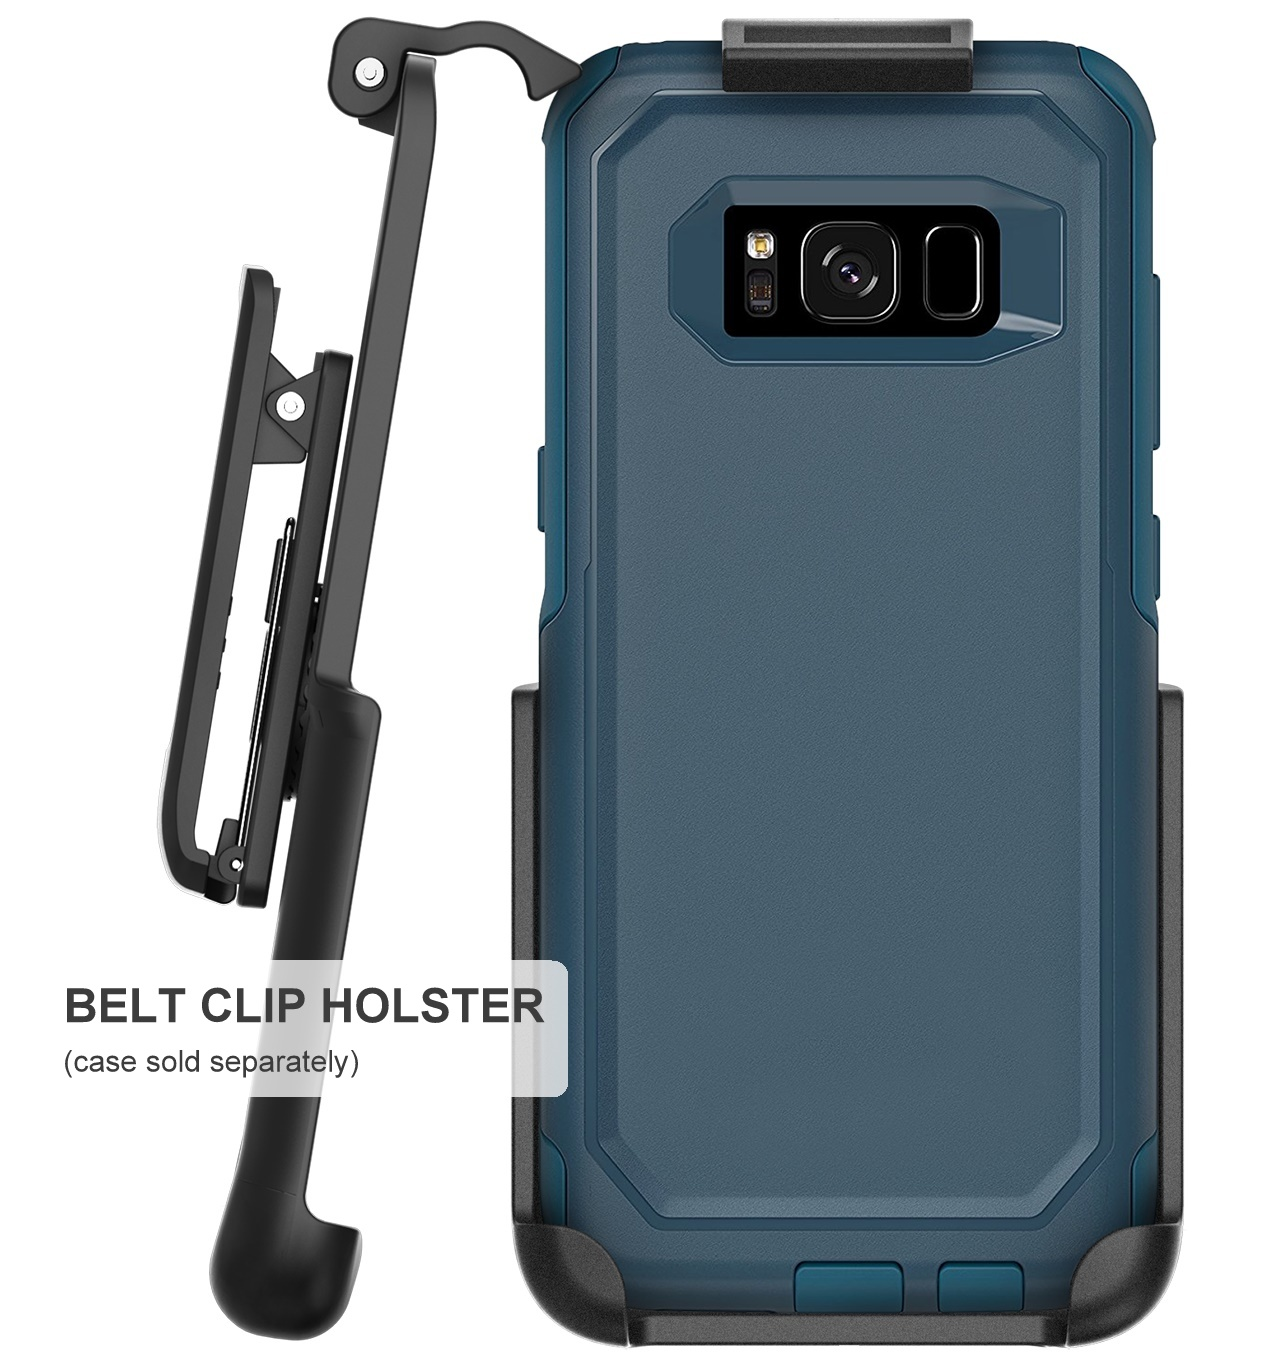 Belt Clip Holster for OtterBox Commuter Case - (By Encased) (case not included)